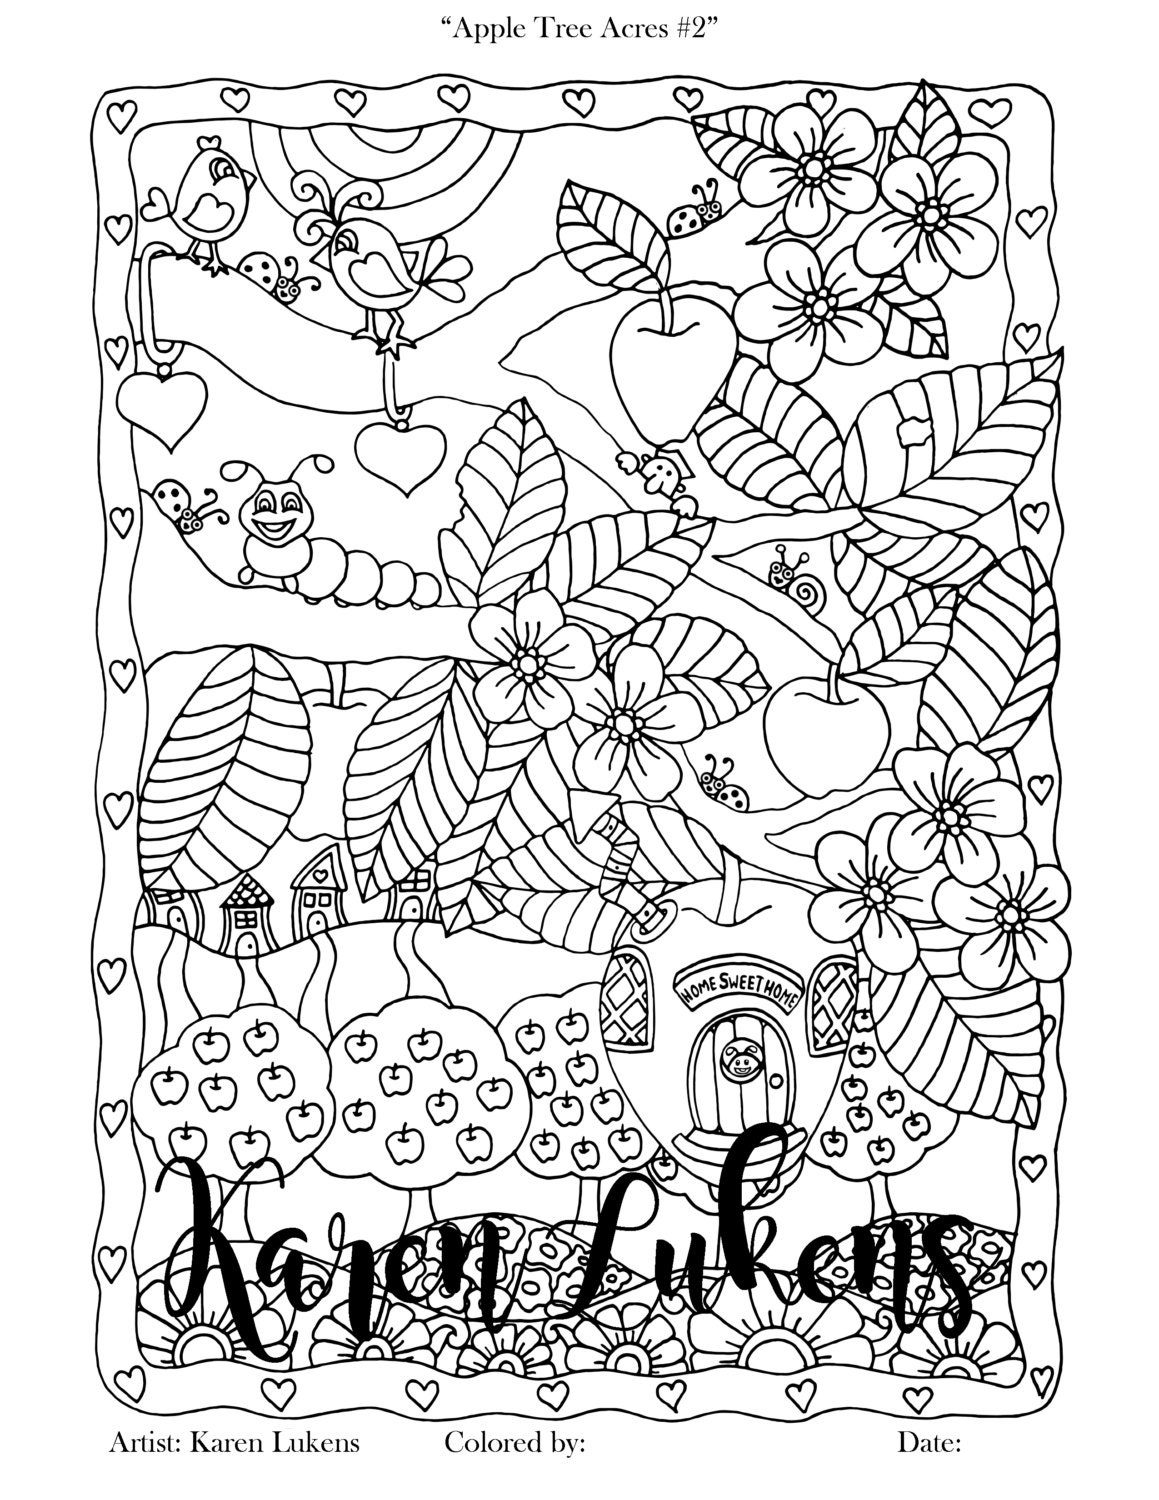 Coloring book page apple tree - Apple Tree Acres 2 1 Adult Coloring Book Page Printable Instant Download